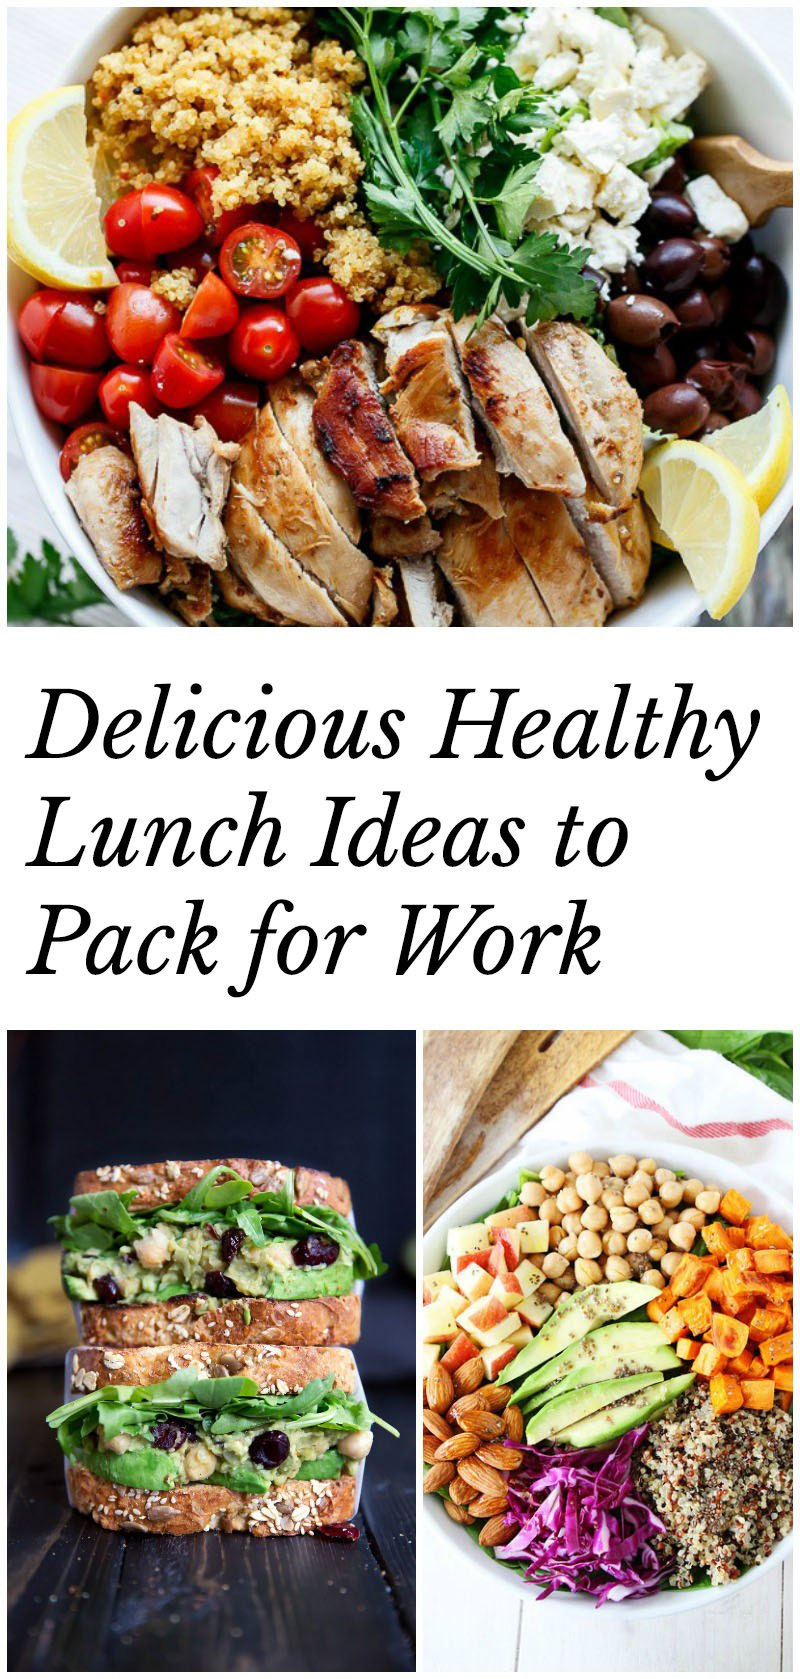 Delicious Healthy Lunch Ideas To Pack For Work Lots Of Salads Sandwich Options